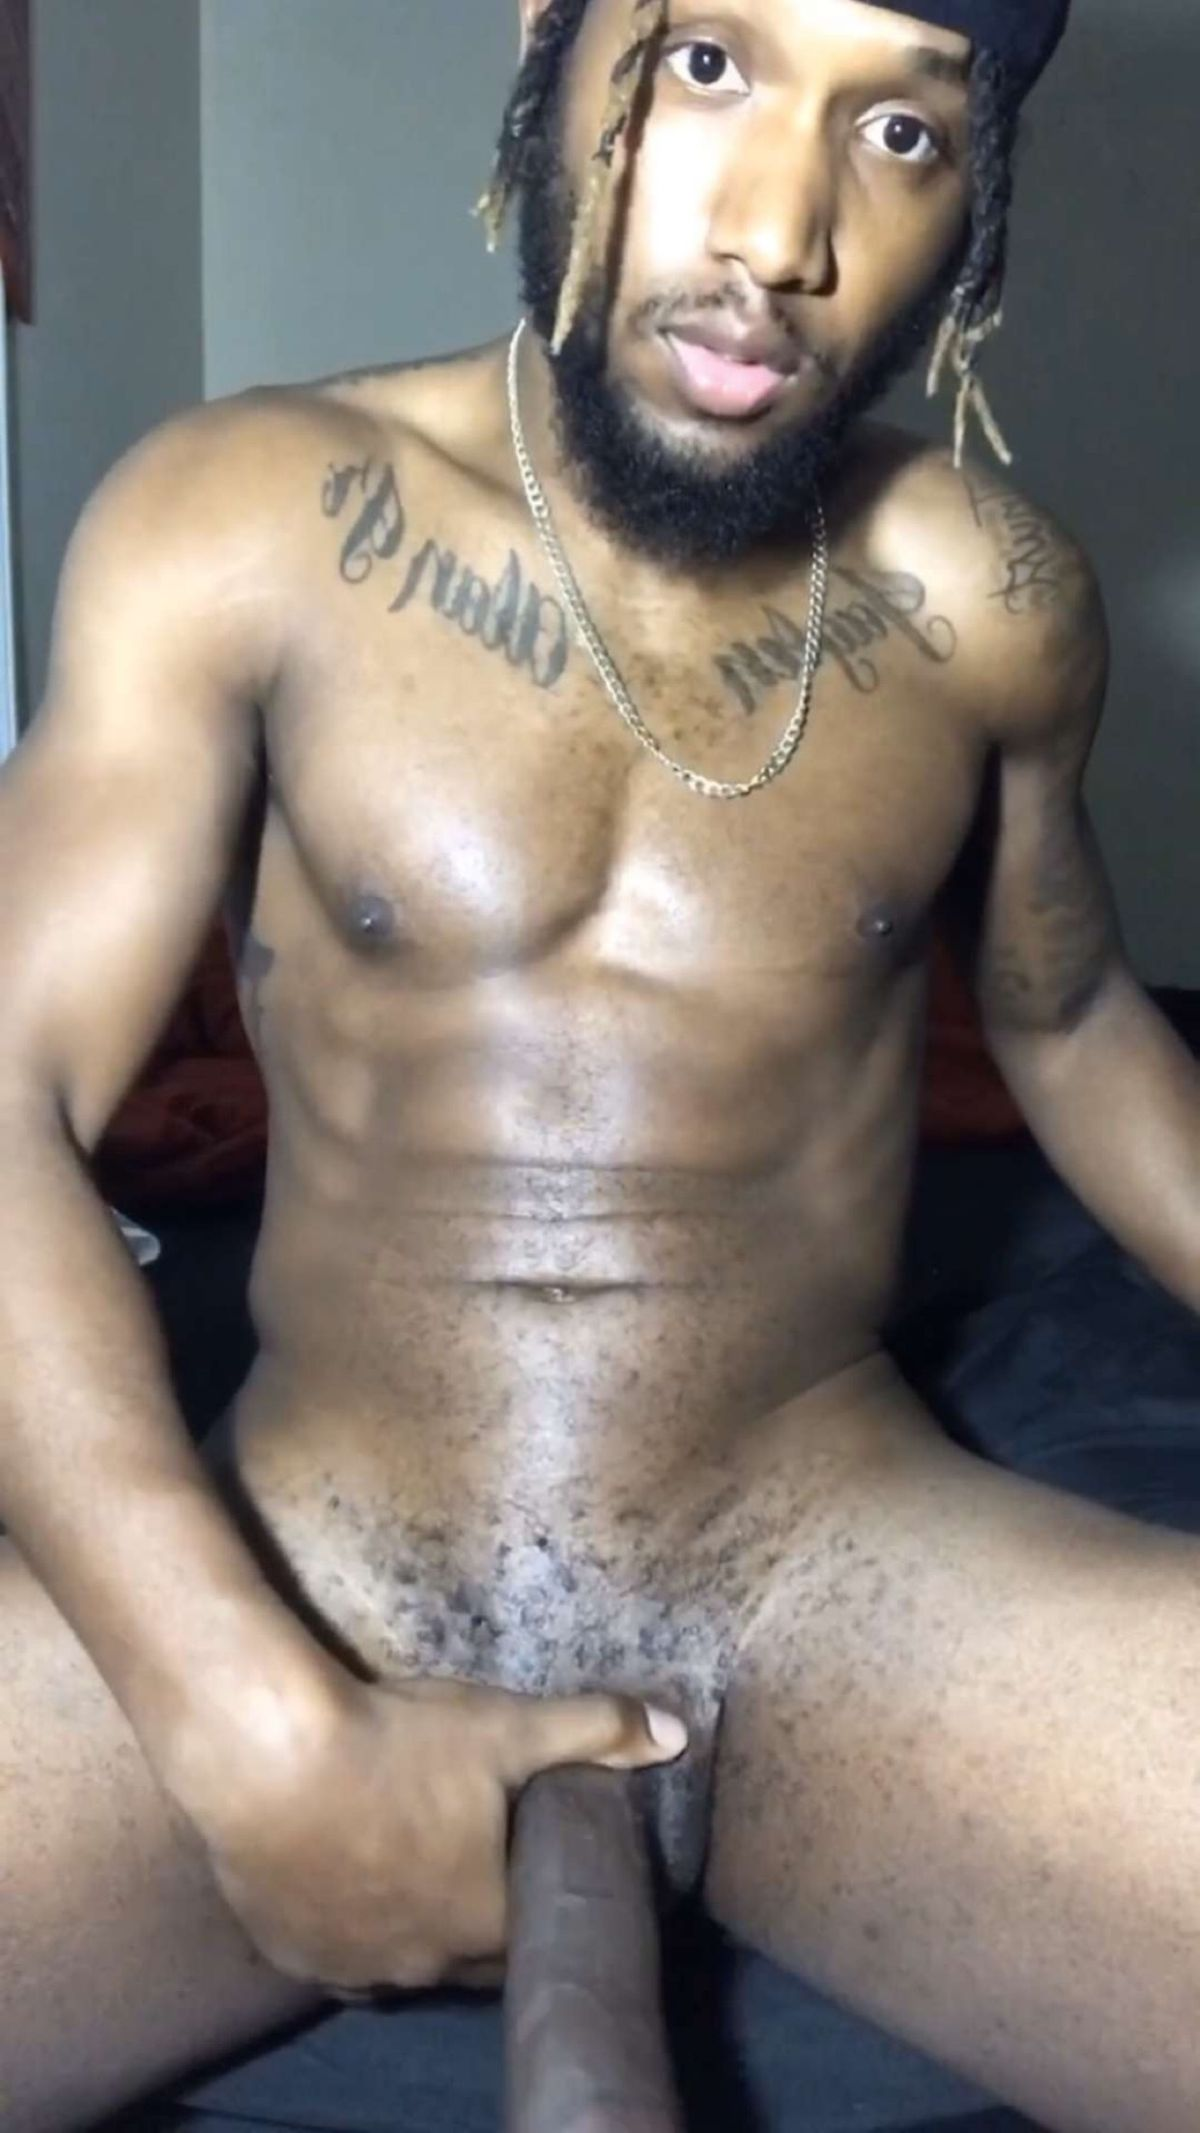 MrNastyy52 OnlyFans Leaked Photos and Videos